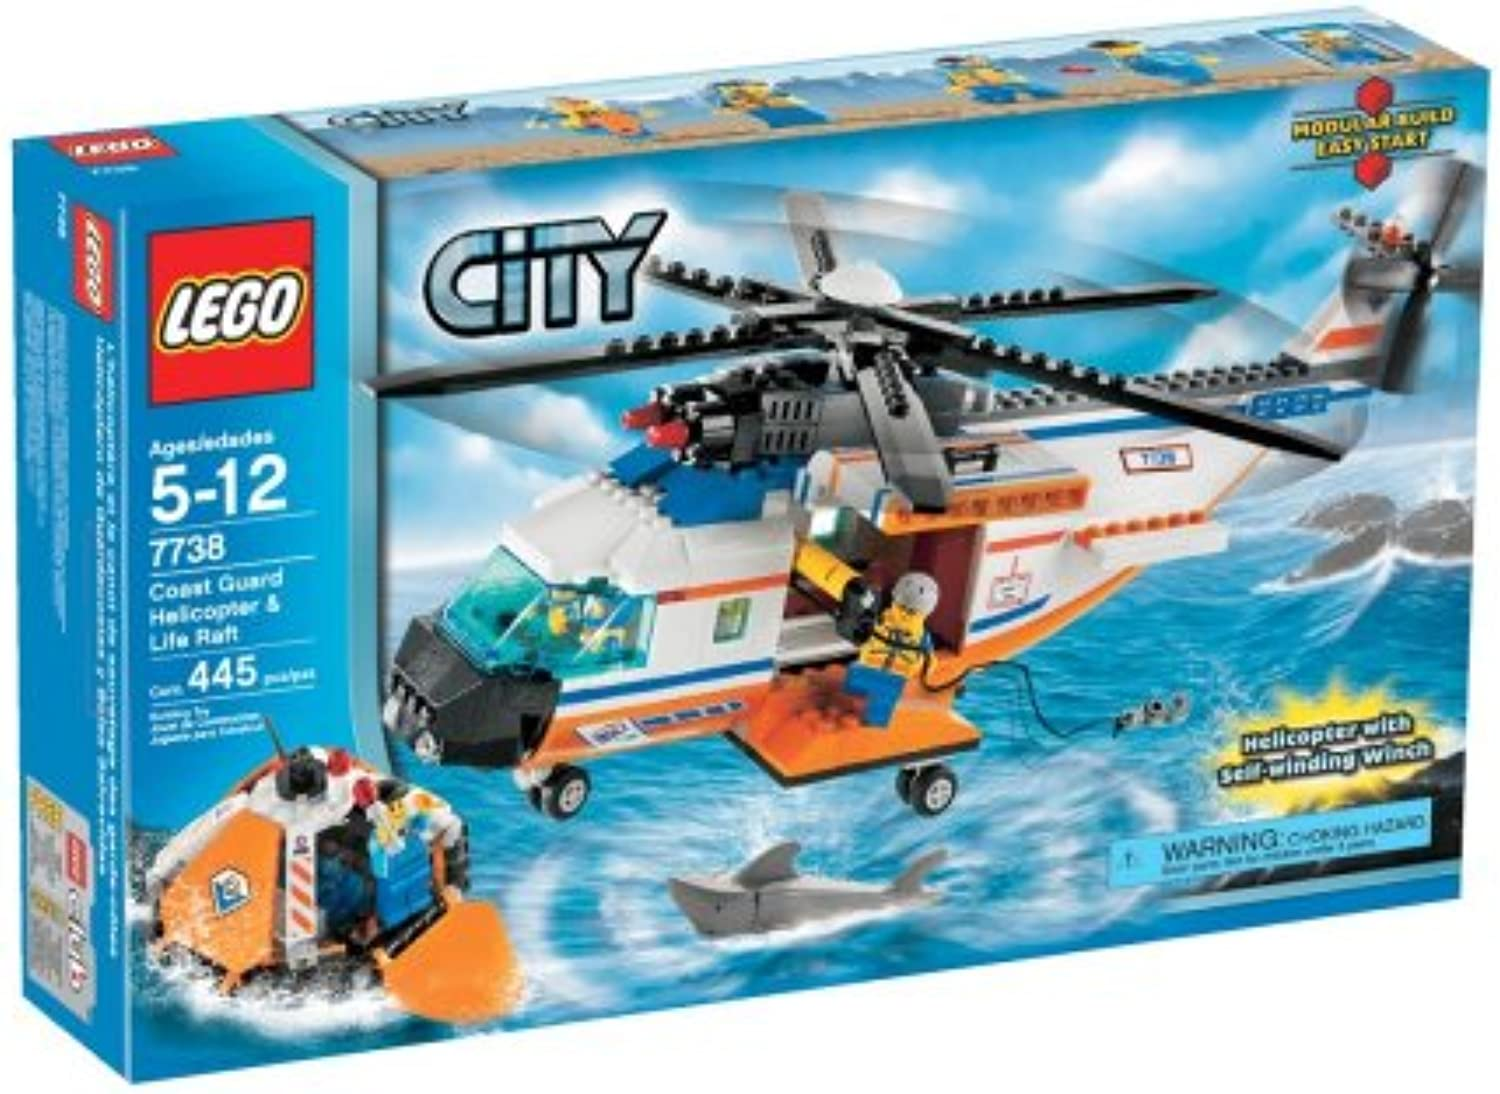 LEGO City Coast Guard Helicopter and Life Raft by LEGO